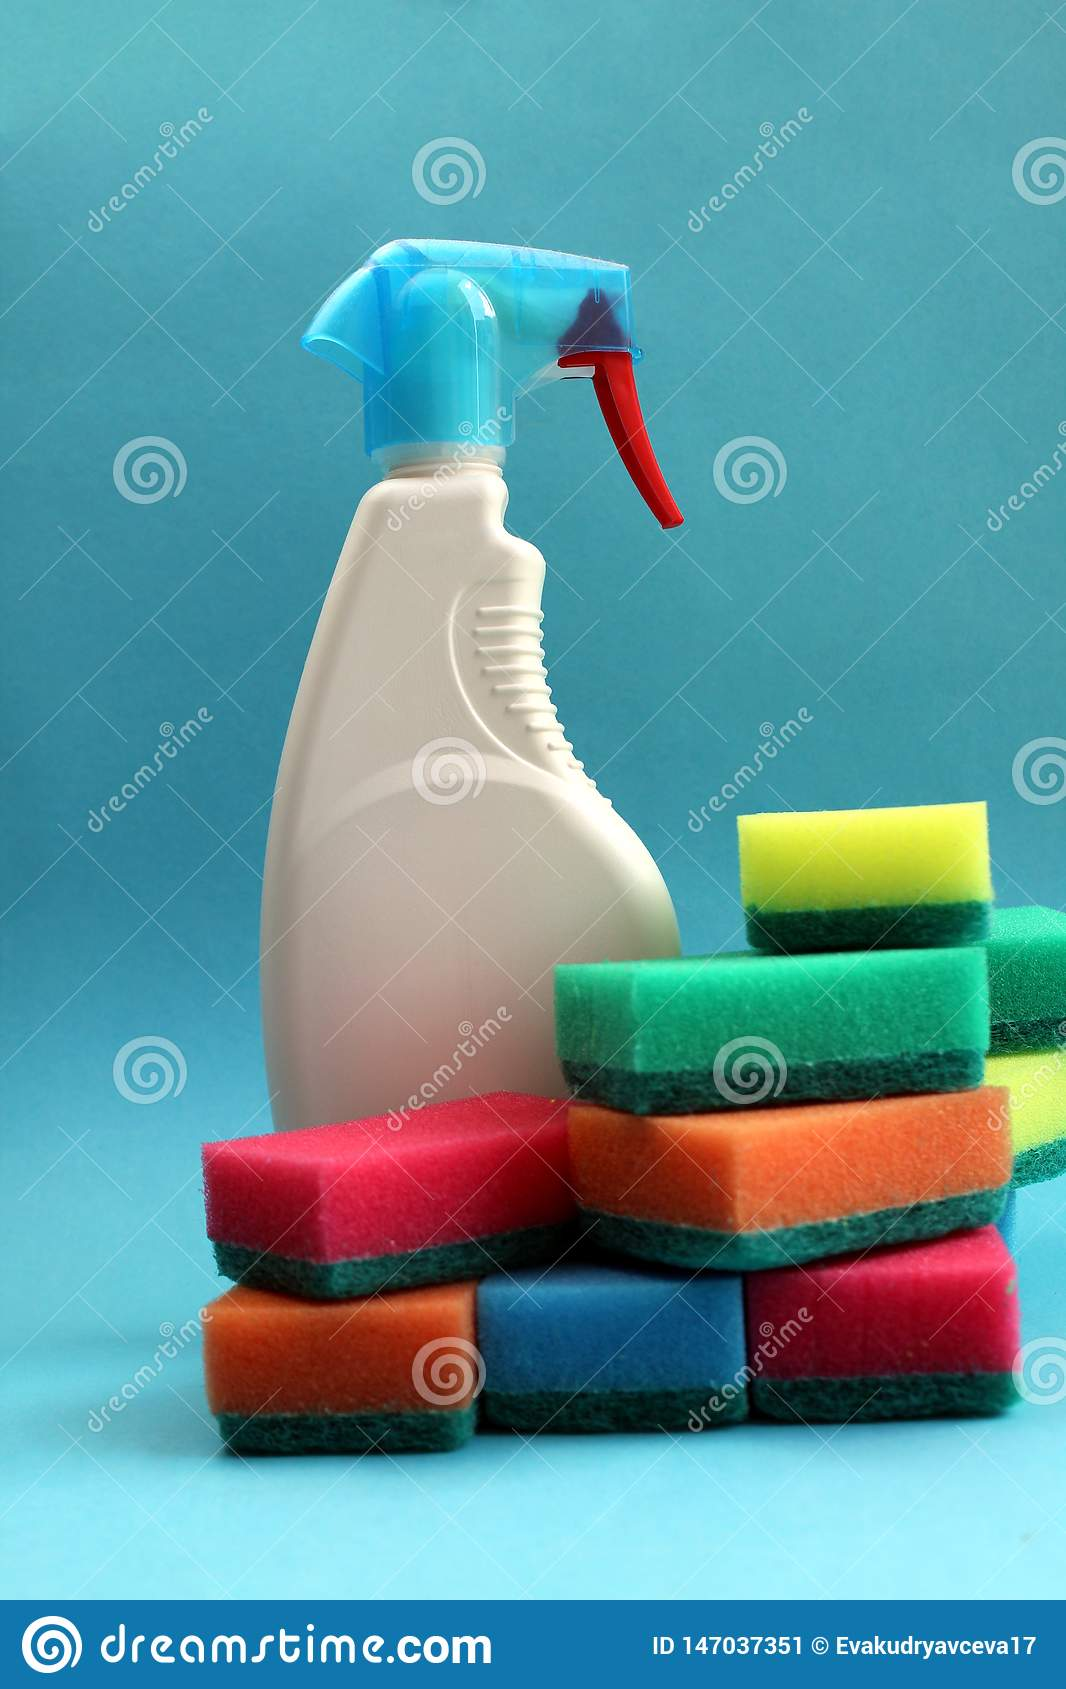 There is a tool for washing windows with lots of colorful sponges